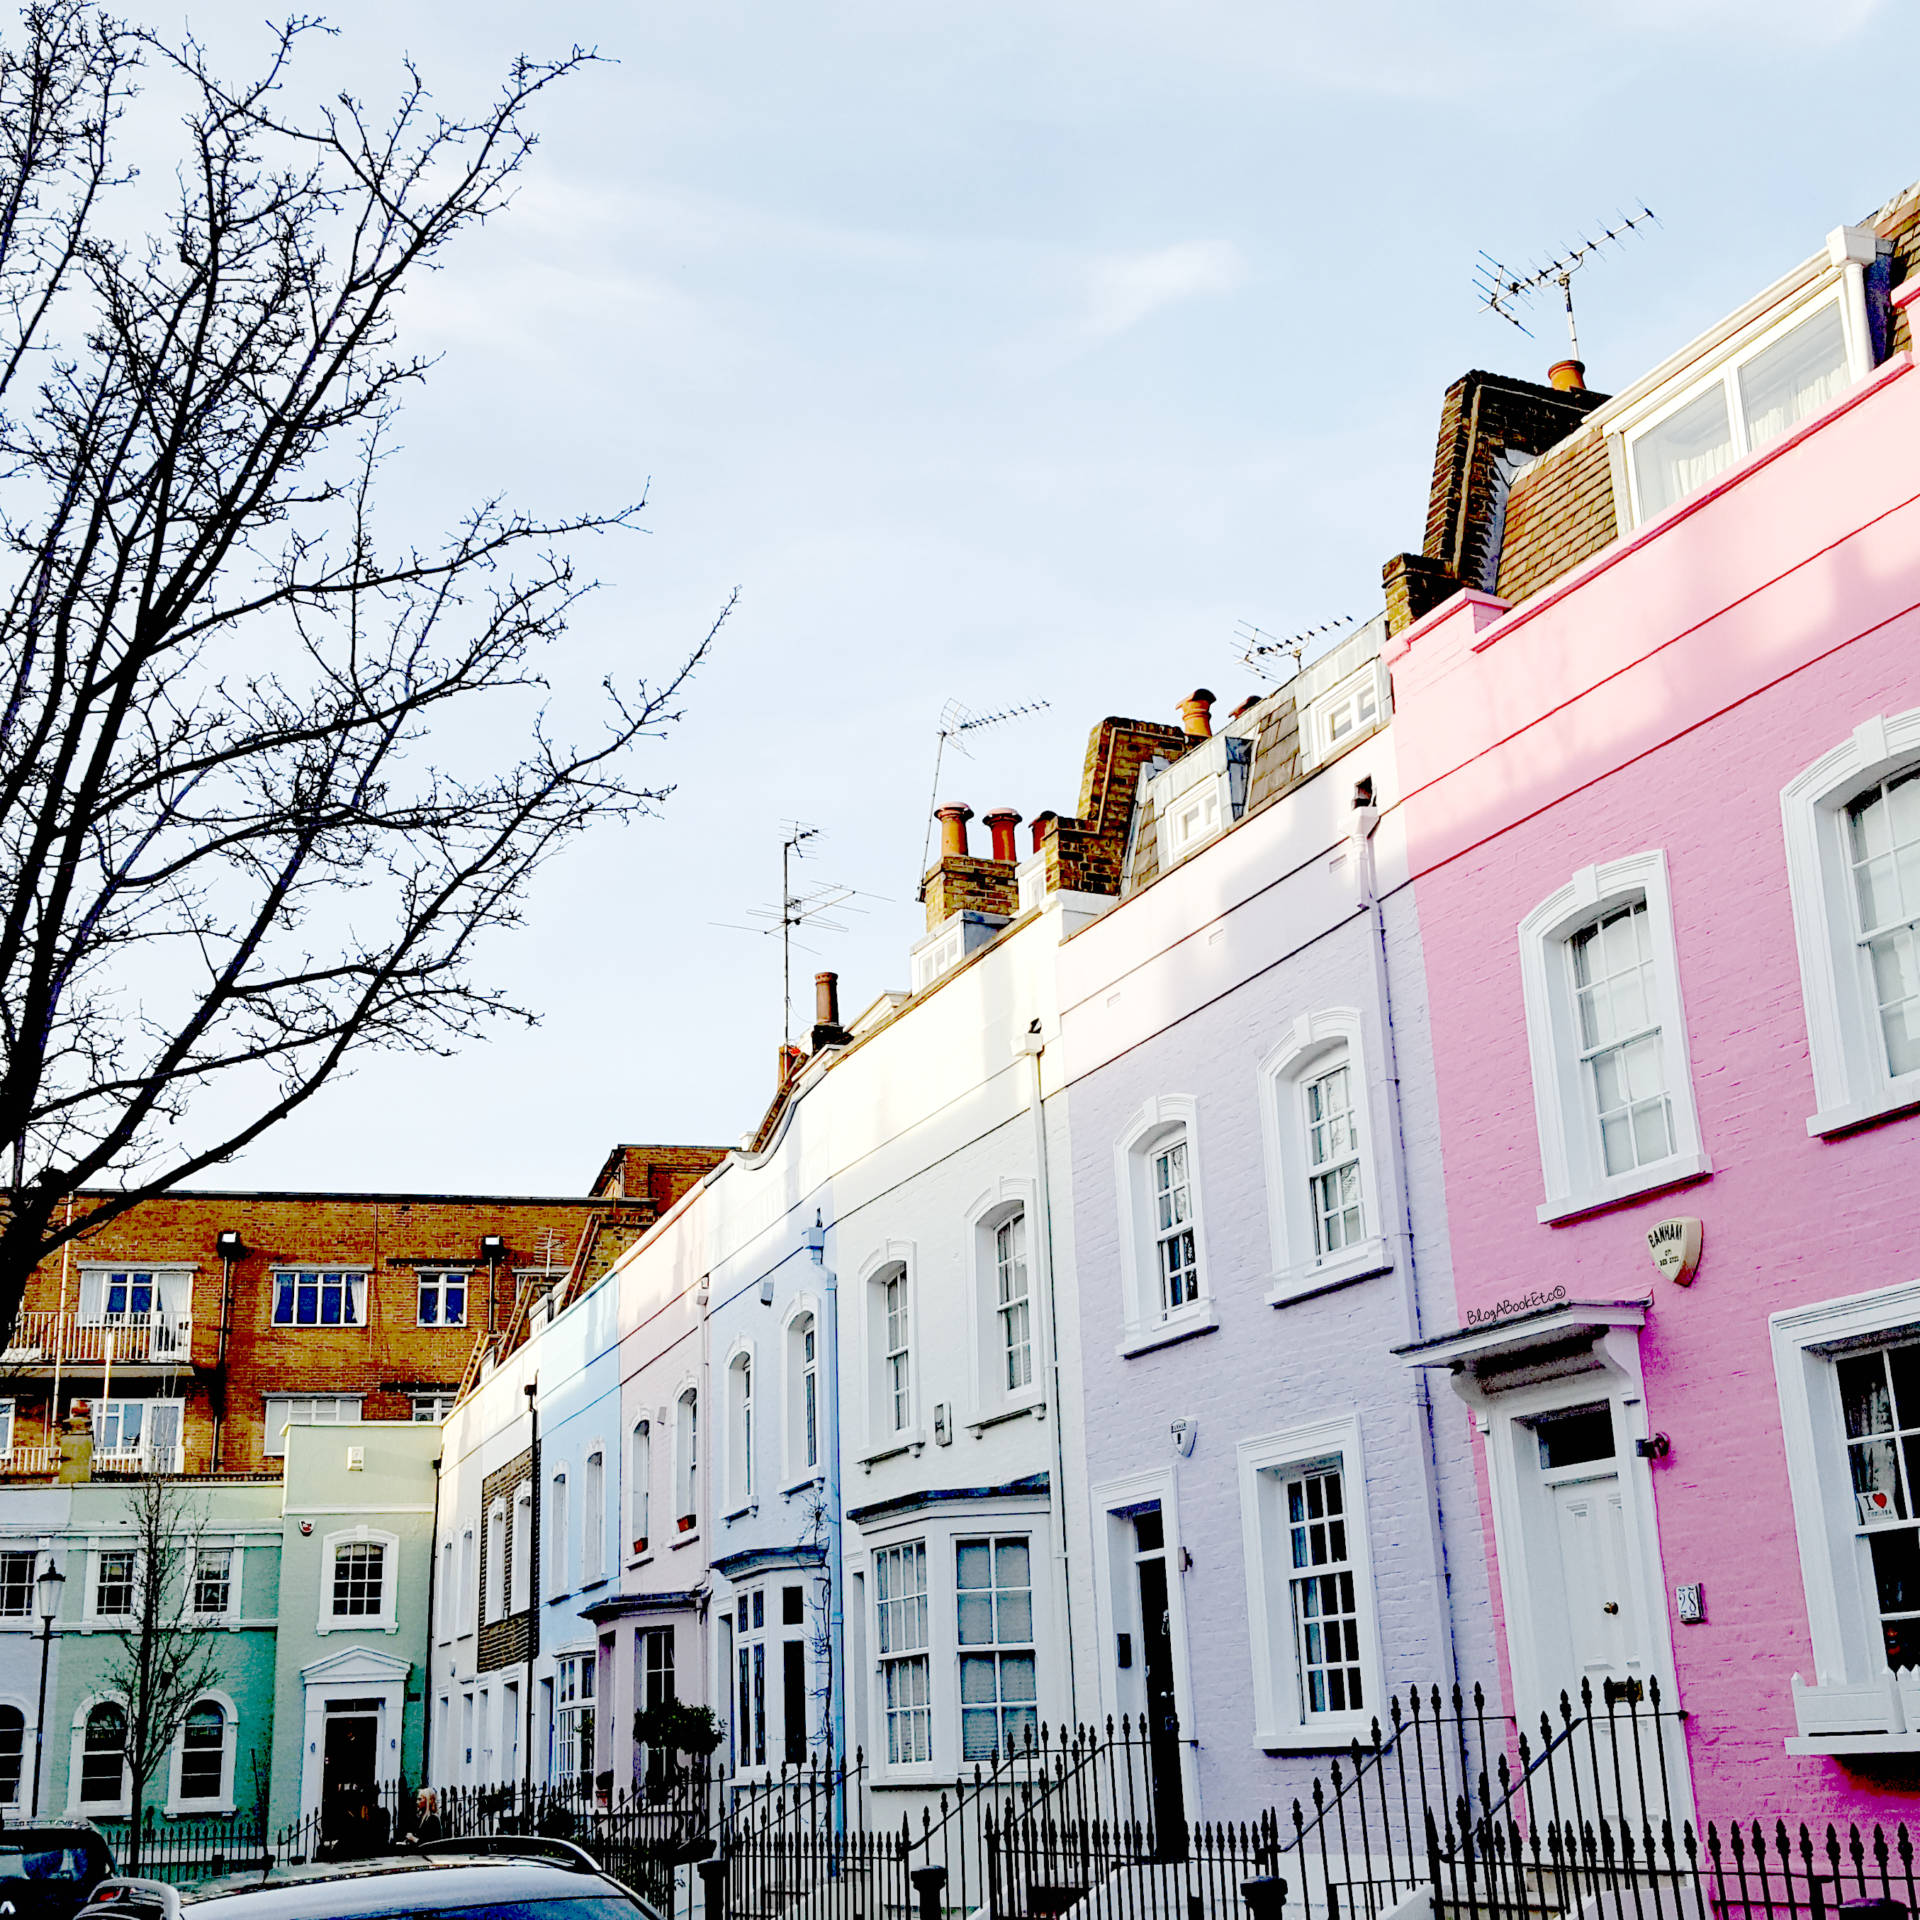 5 Free Things in London, London, London Blogger, Pretty Little London, Pretty City London, City, City Life, Life, London Life, Love London, Houses, Coloured Houses, Blue Skies, Beautiful Day, Beautiful, Blogger, Blog A Book Etc, Fay Simone, Fay